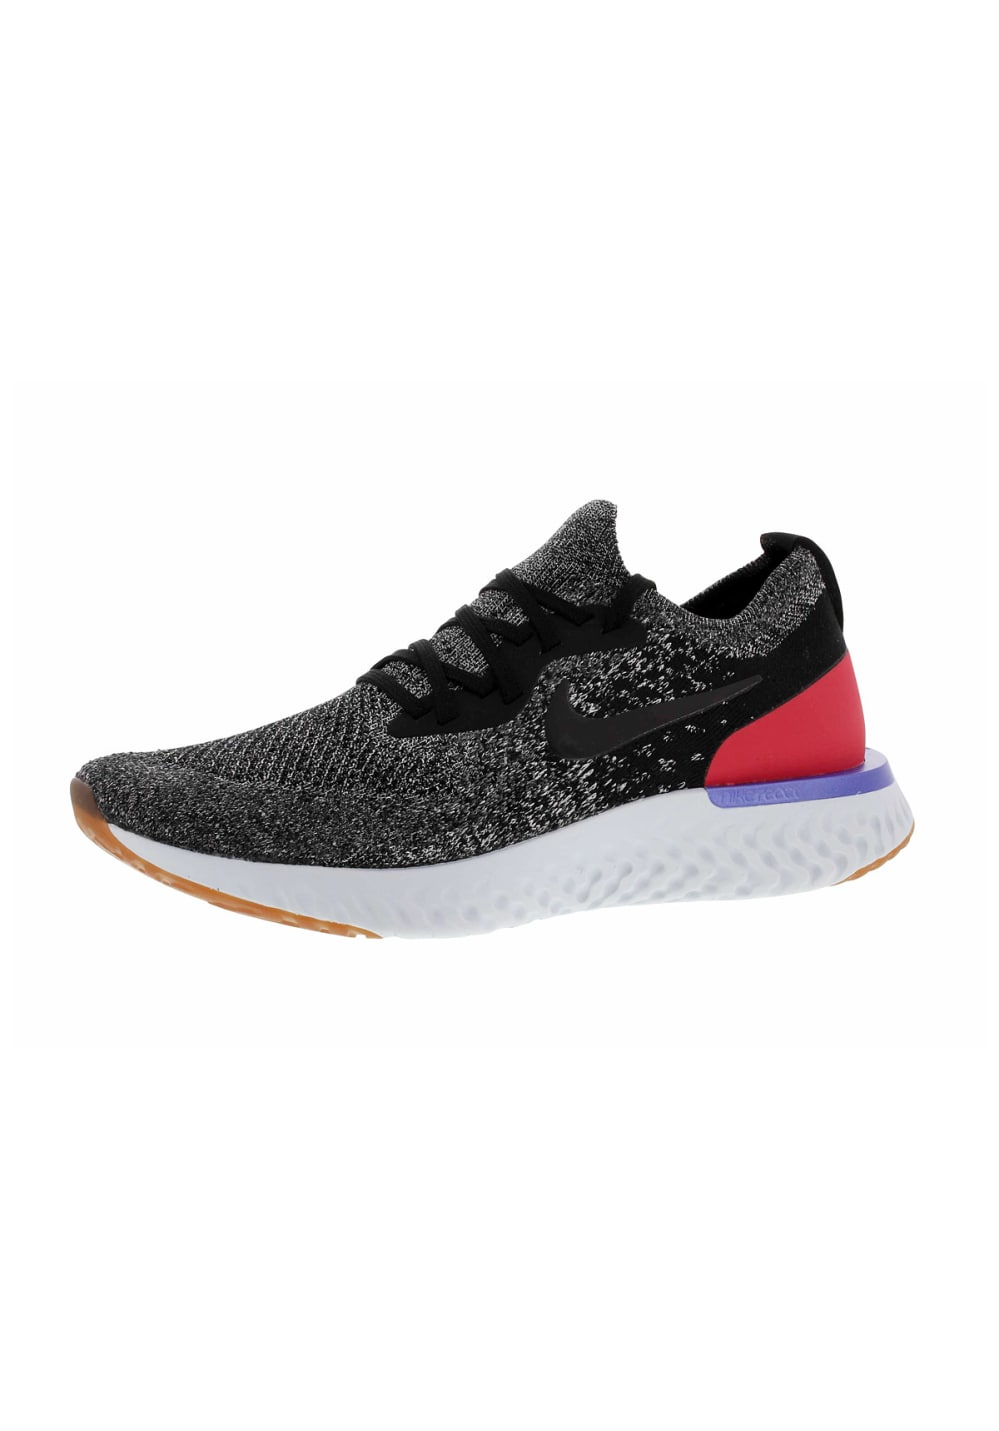 the best attitude 8e85a a308d Nike Epic React Flyknit - Running shoes for Men - Grey